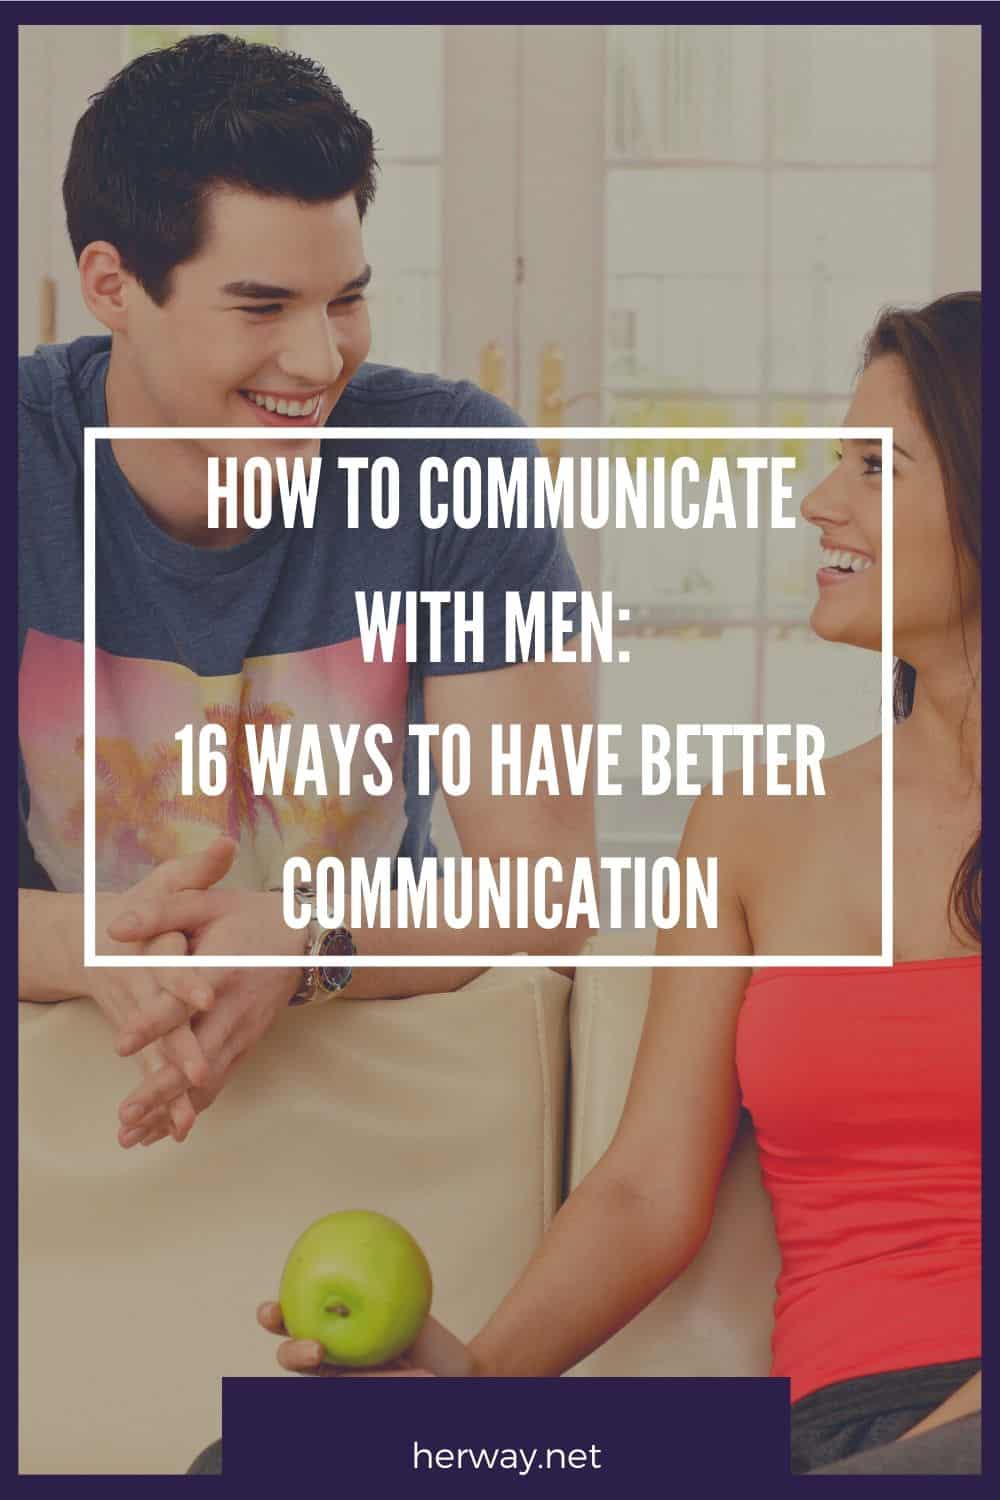 How To Communicate With Men: 16 Ways To Have Better Communication